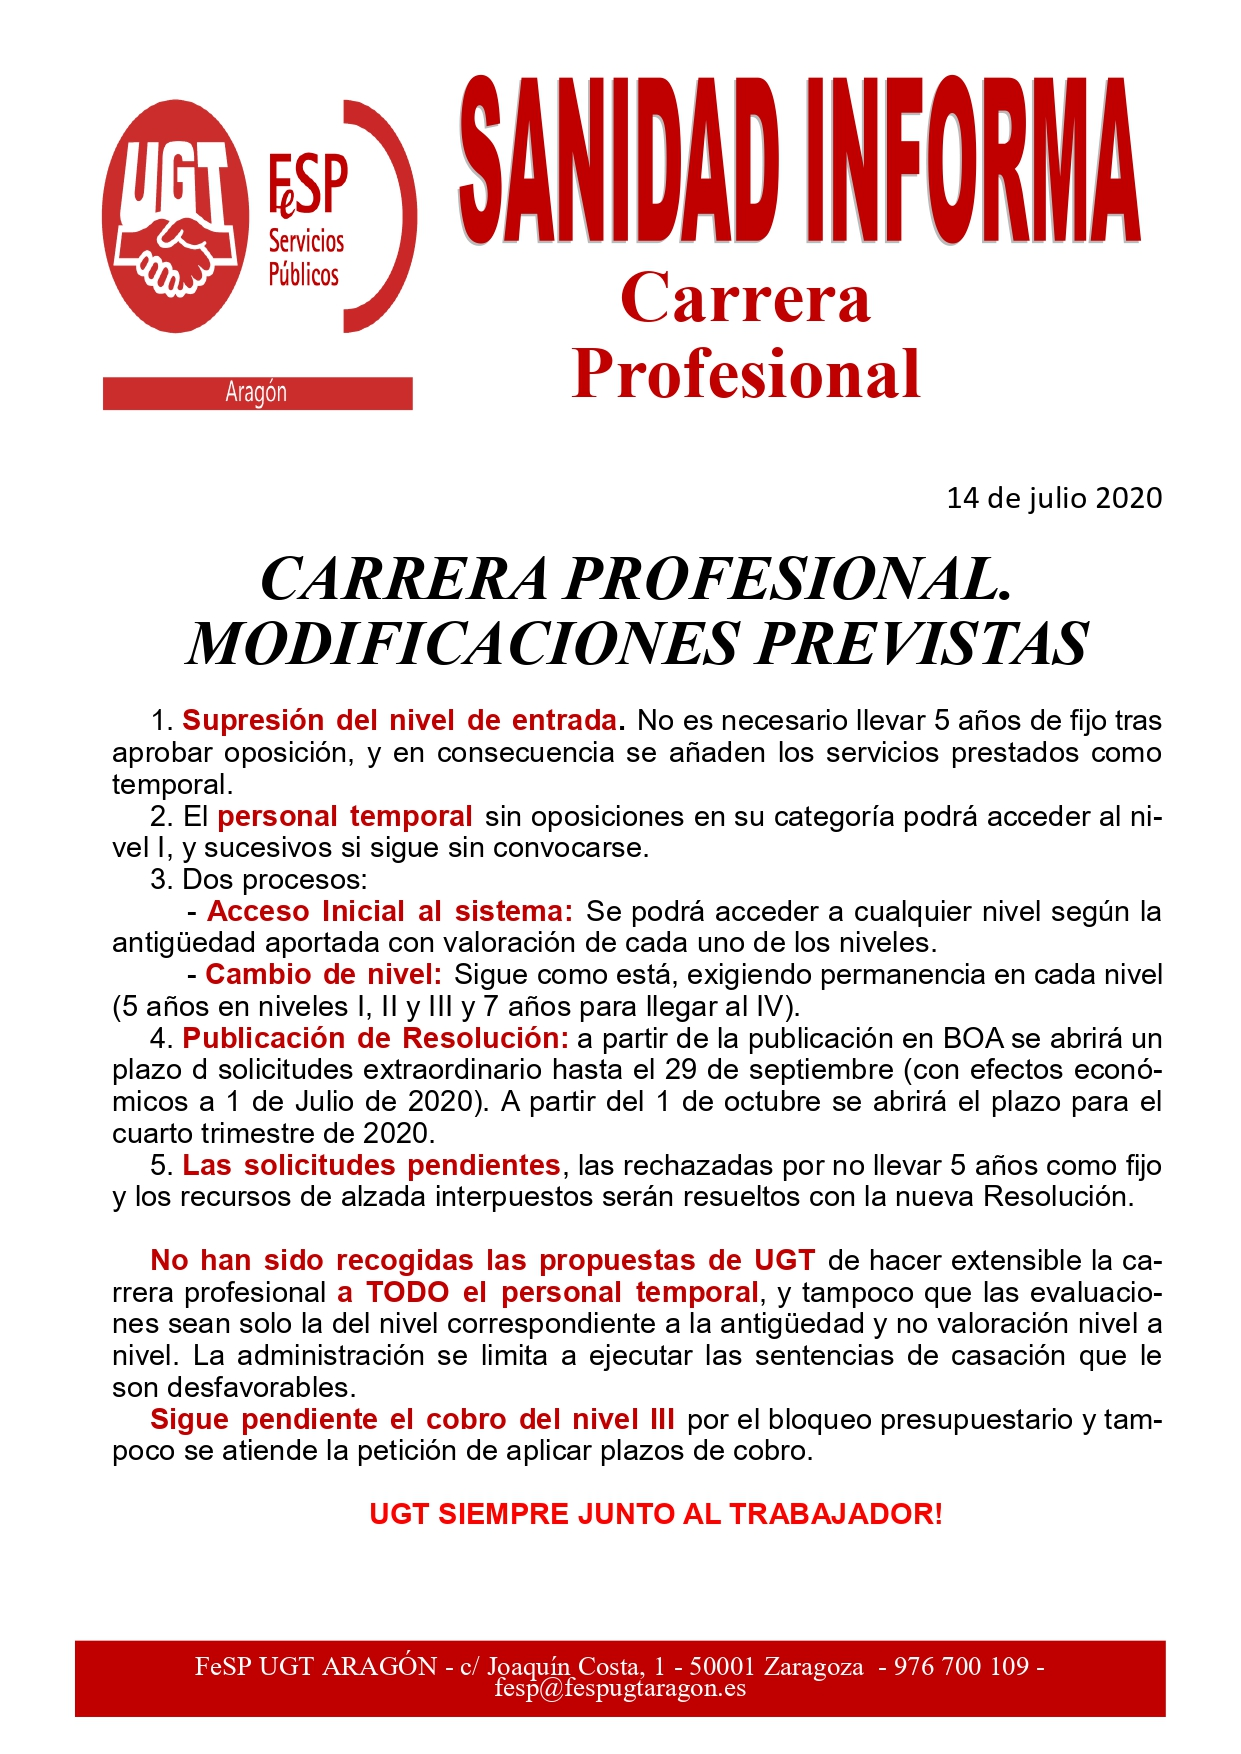 Carrera Profesional 14 jul 2020